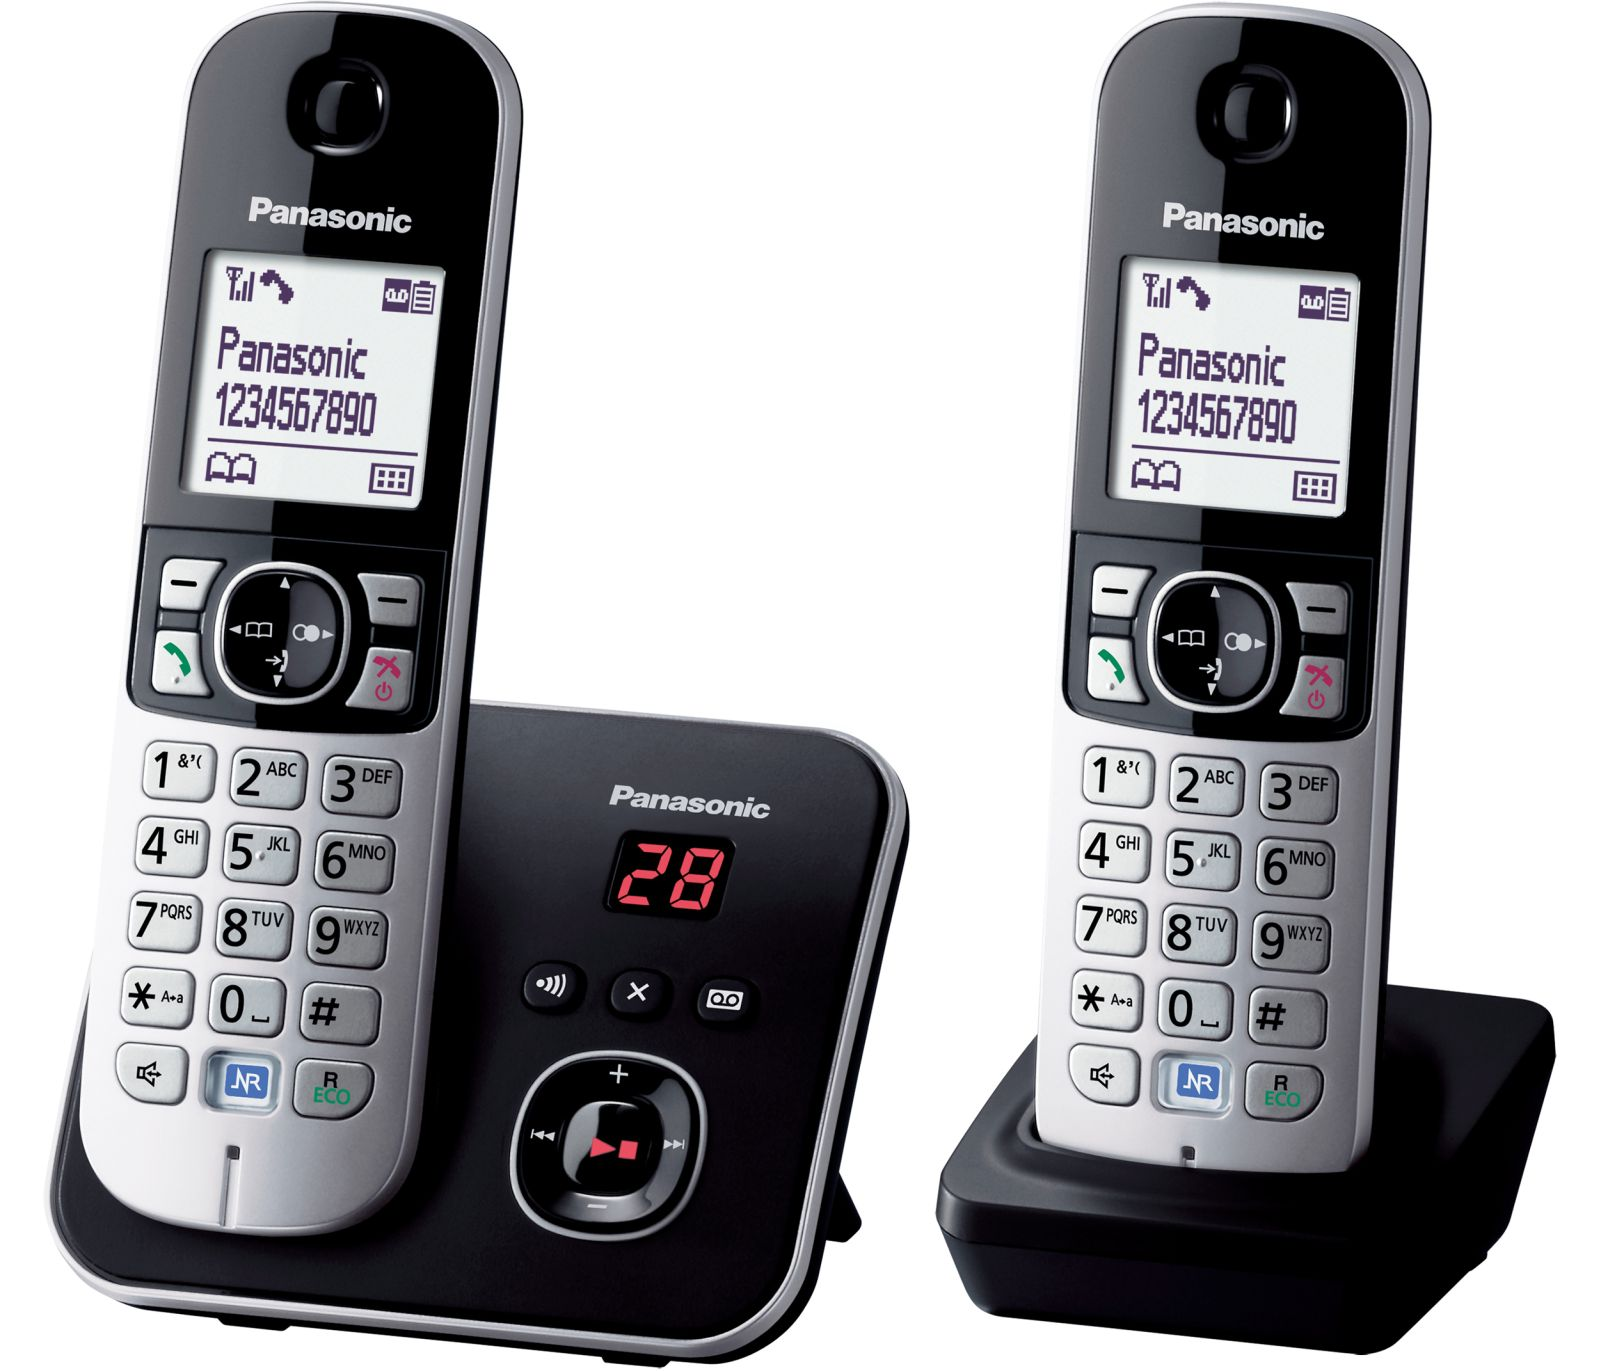 Image of Panasonic KX-TG 6822 Cordless Phone, Twin Handset with Answer Machine